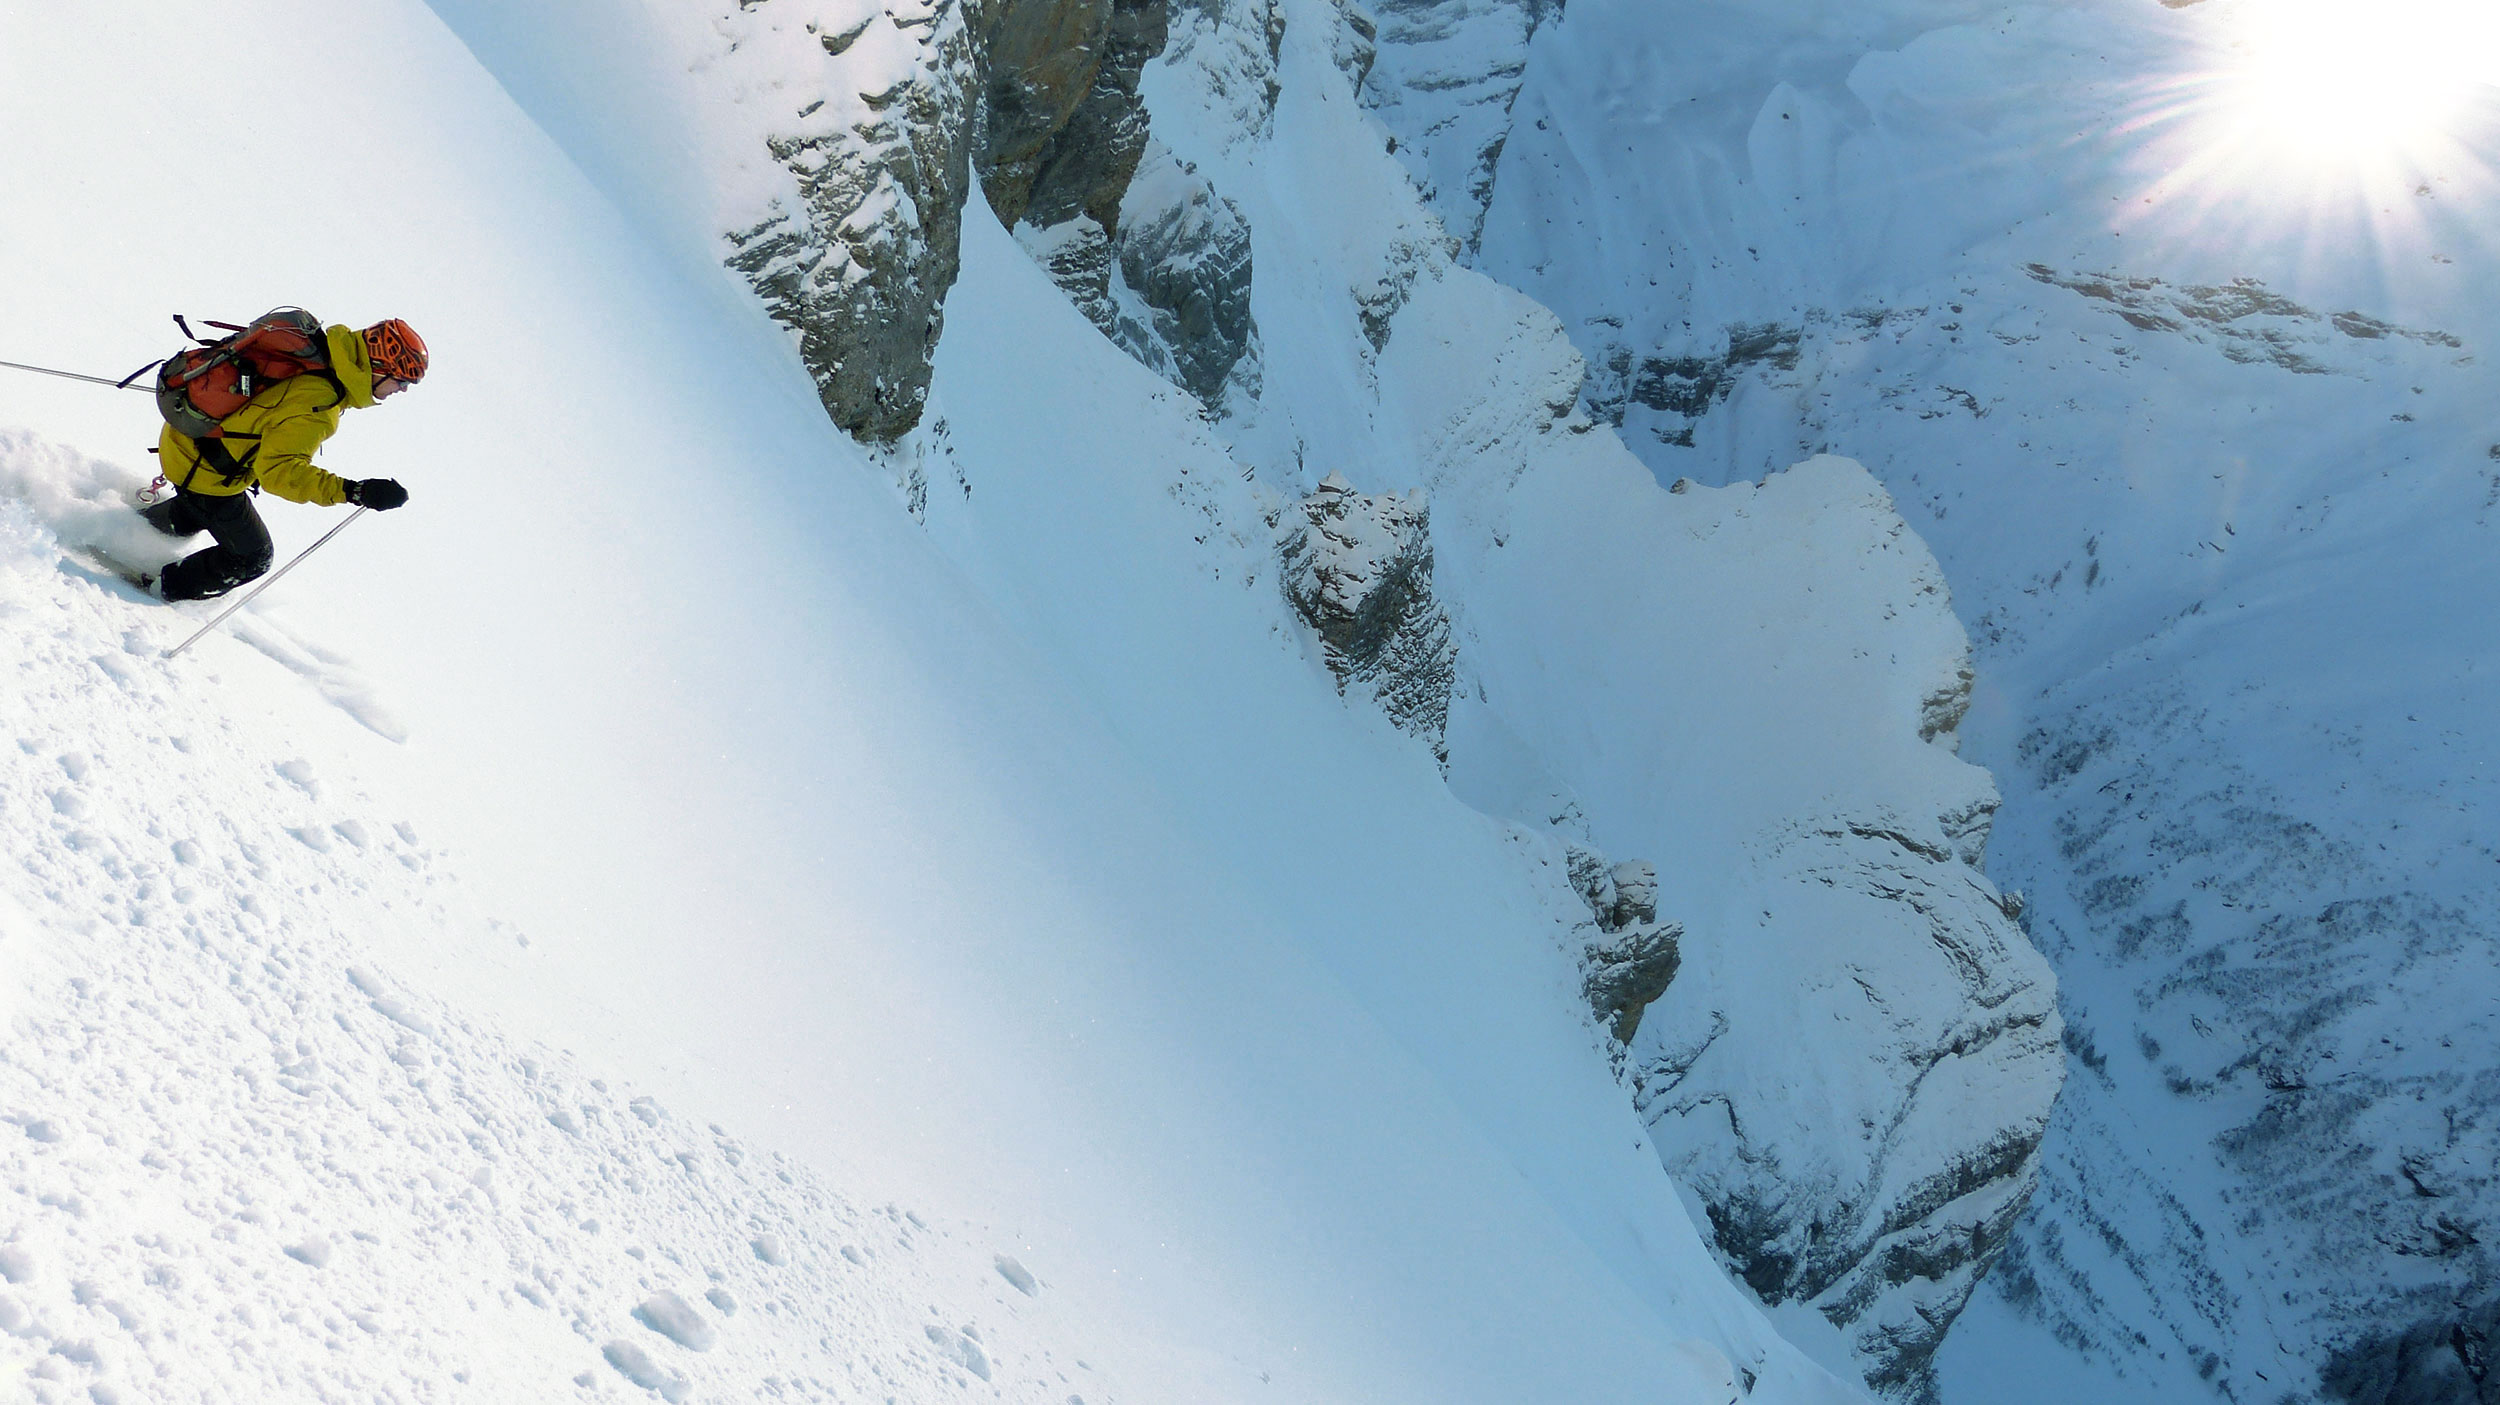 Gilles Bornet on the first descent of the West Face of the Grand Muveran, Switzerland. After Gilles' death, I took more to skiing alone. Photo: Sebastien de Saint Marie.